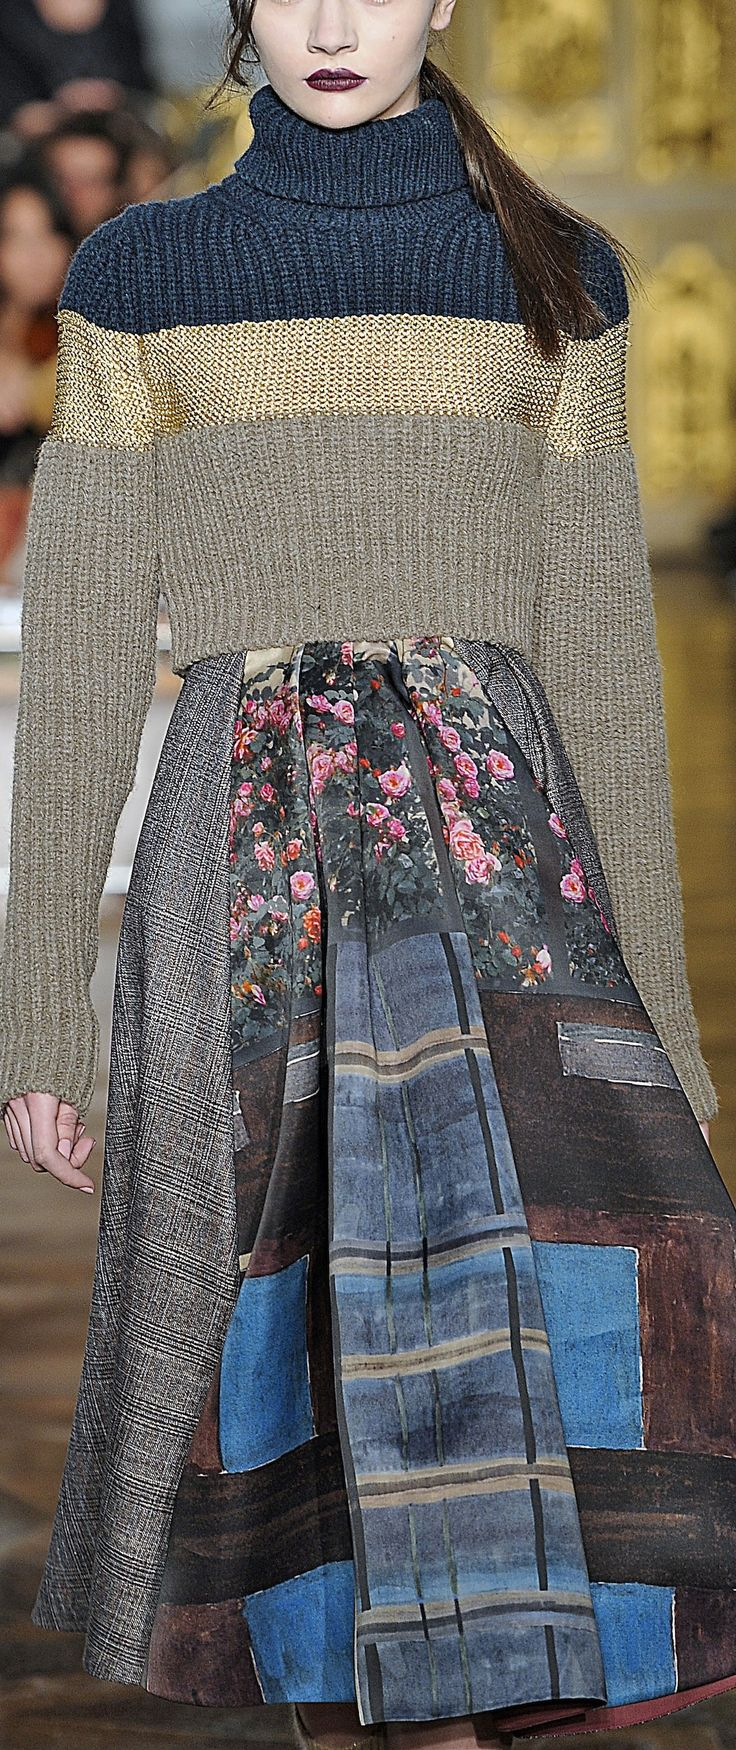 Antonio Marras - Milan Fashion Week FW13/14 love the tweedy material with the cute flowery inserts I think some of the amateurs do a better job with upcycling than the designers